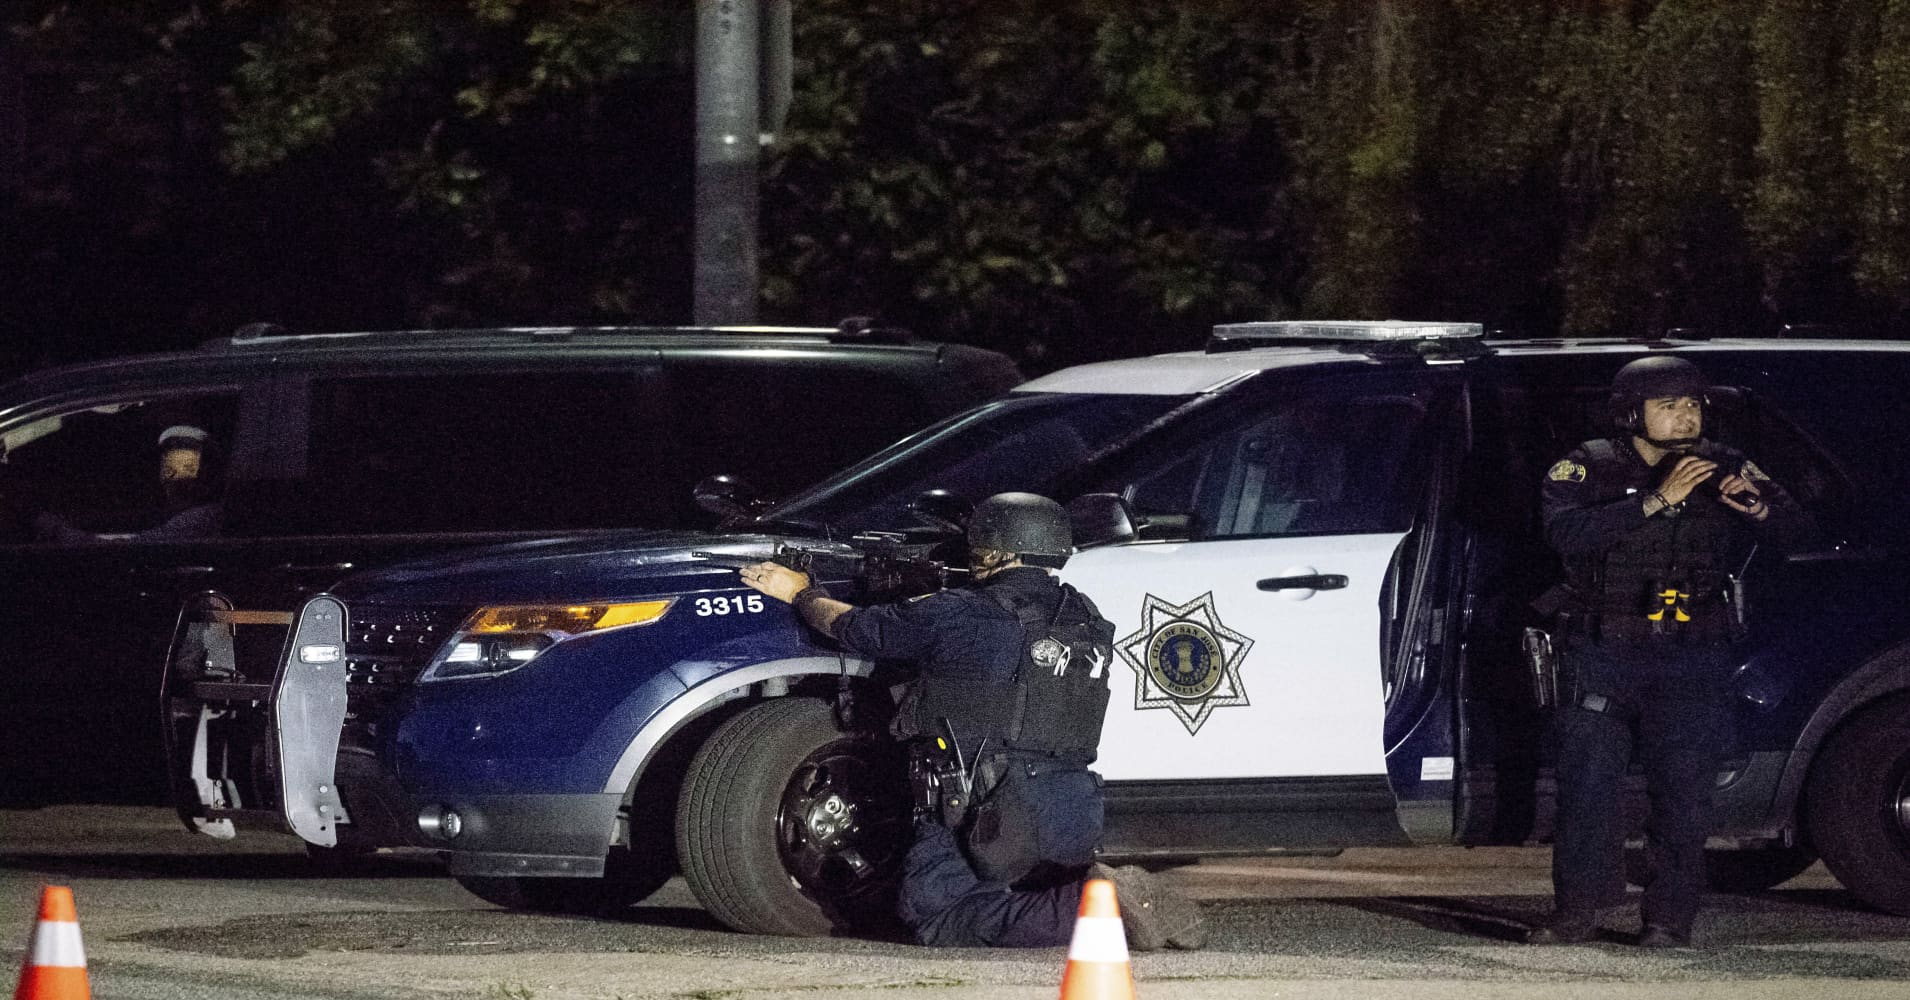 Three people killed in shooting at a garlic festival in Northern California